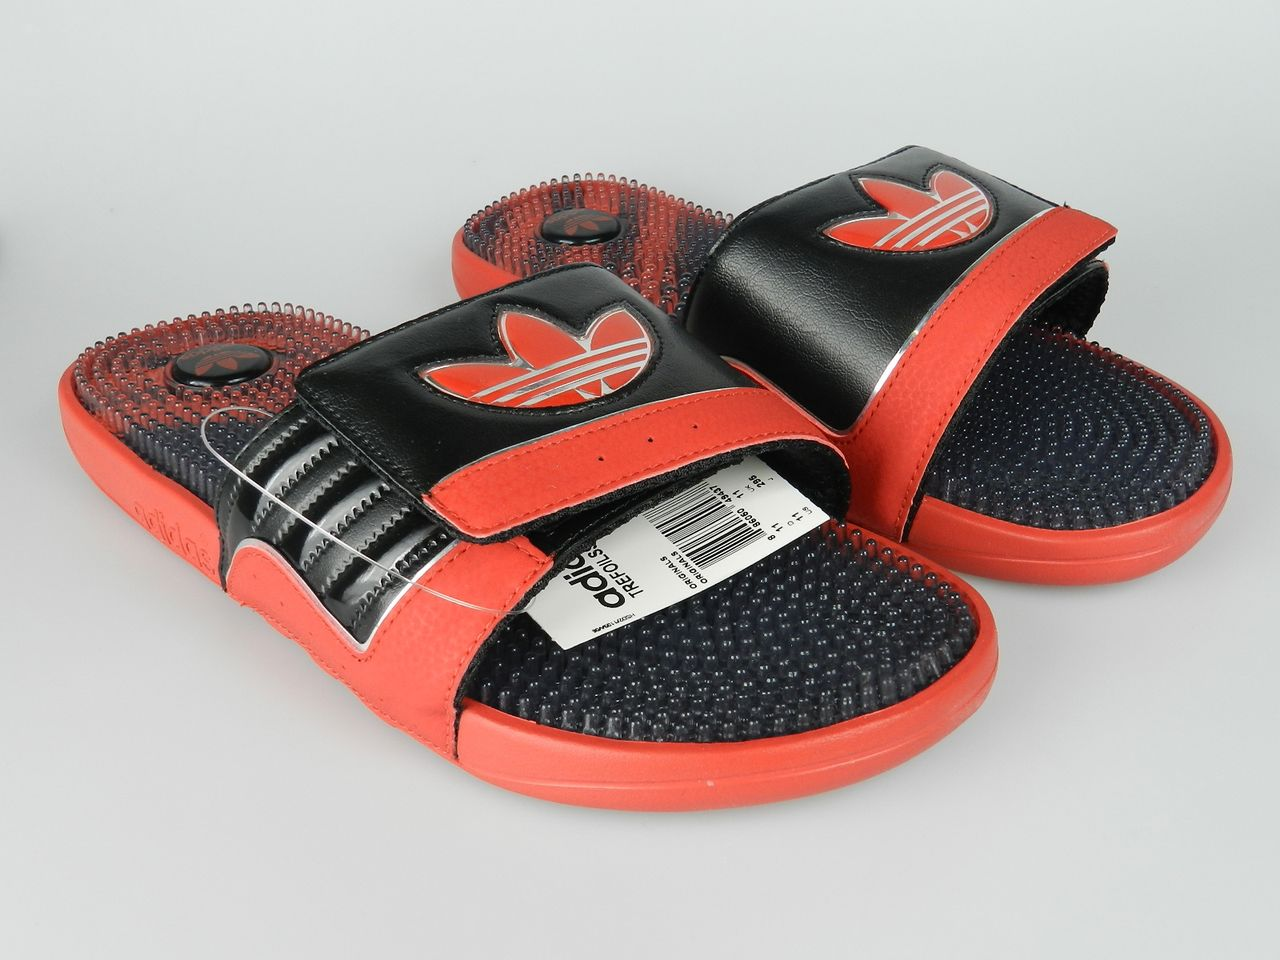 2b8479d9ccc9 ADIDAS TREFOILSSAGE NEW Mens Red Black Bulls Sandals Sliders Shoes ...